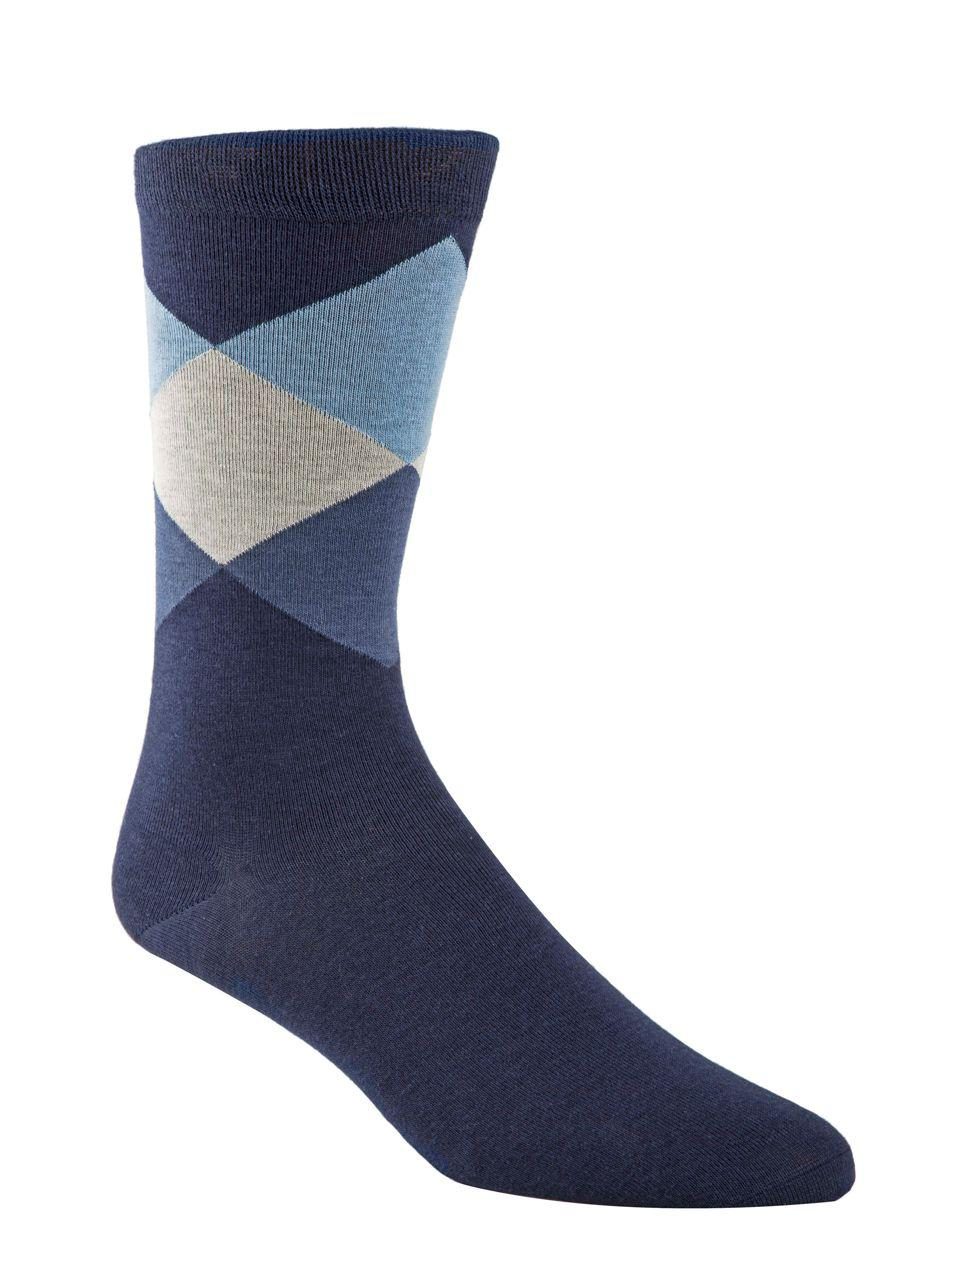 1806bf8645f6 Lyst - Cole Haan Diamond Patterned Crew Socks in Blue for Men